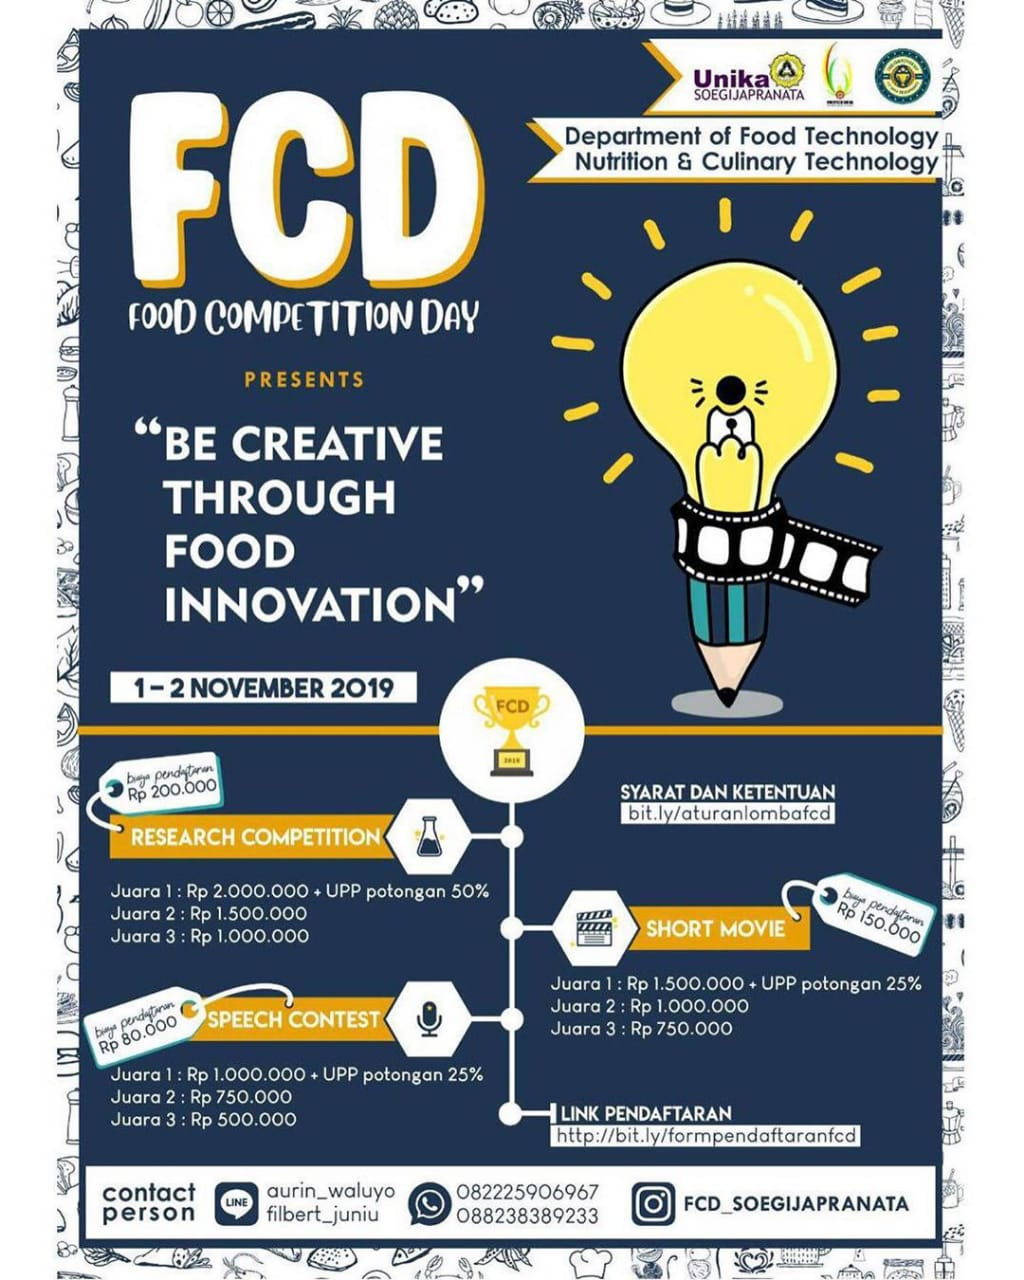 FOOD COMPETITION DAY 2019 PRESENTS BE CREATIVE THROUGH FOOD INNOVATION